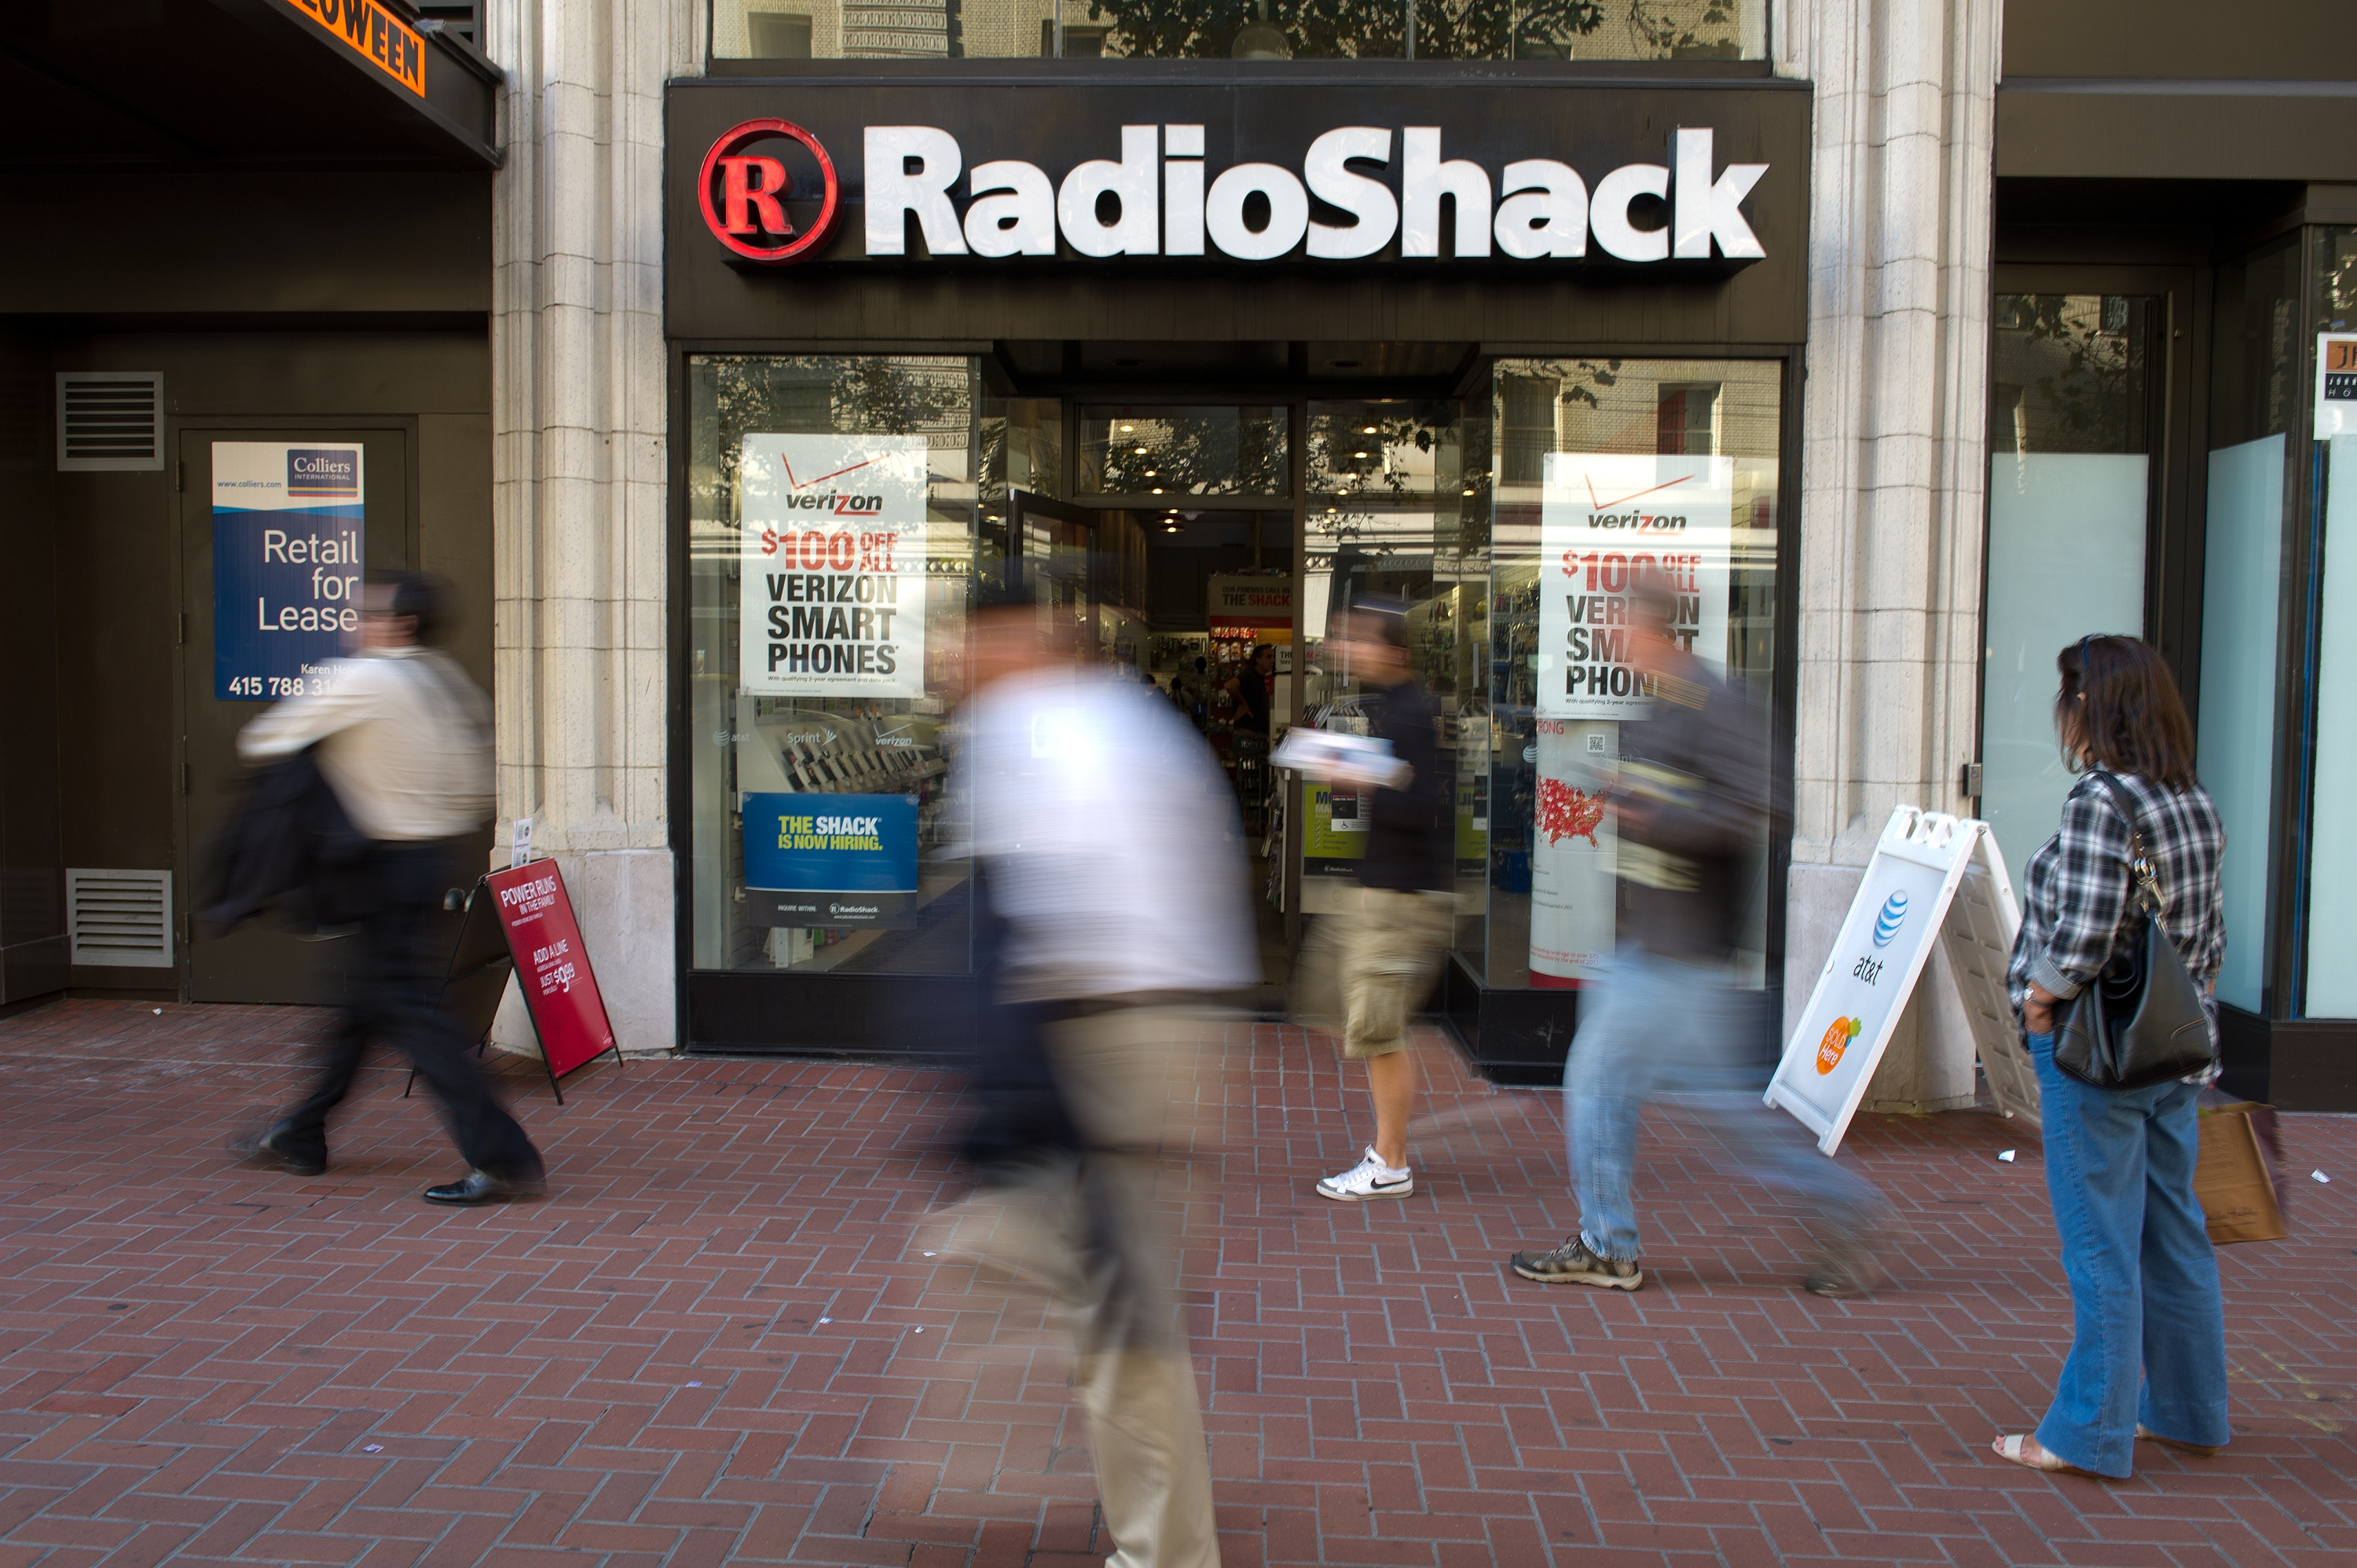 Why the Internet did not kill RadioShack | Fortune